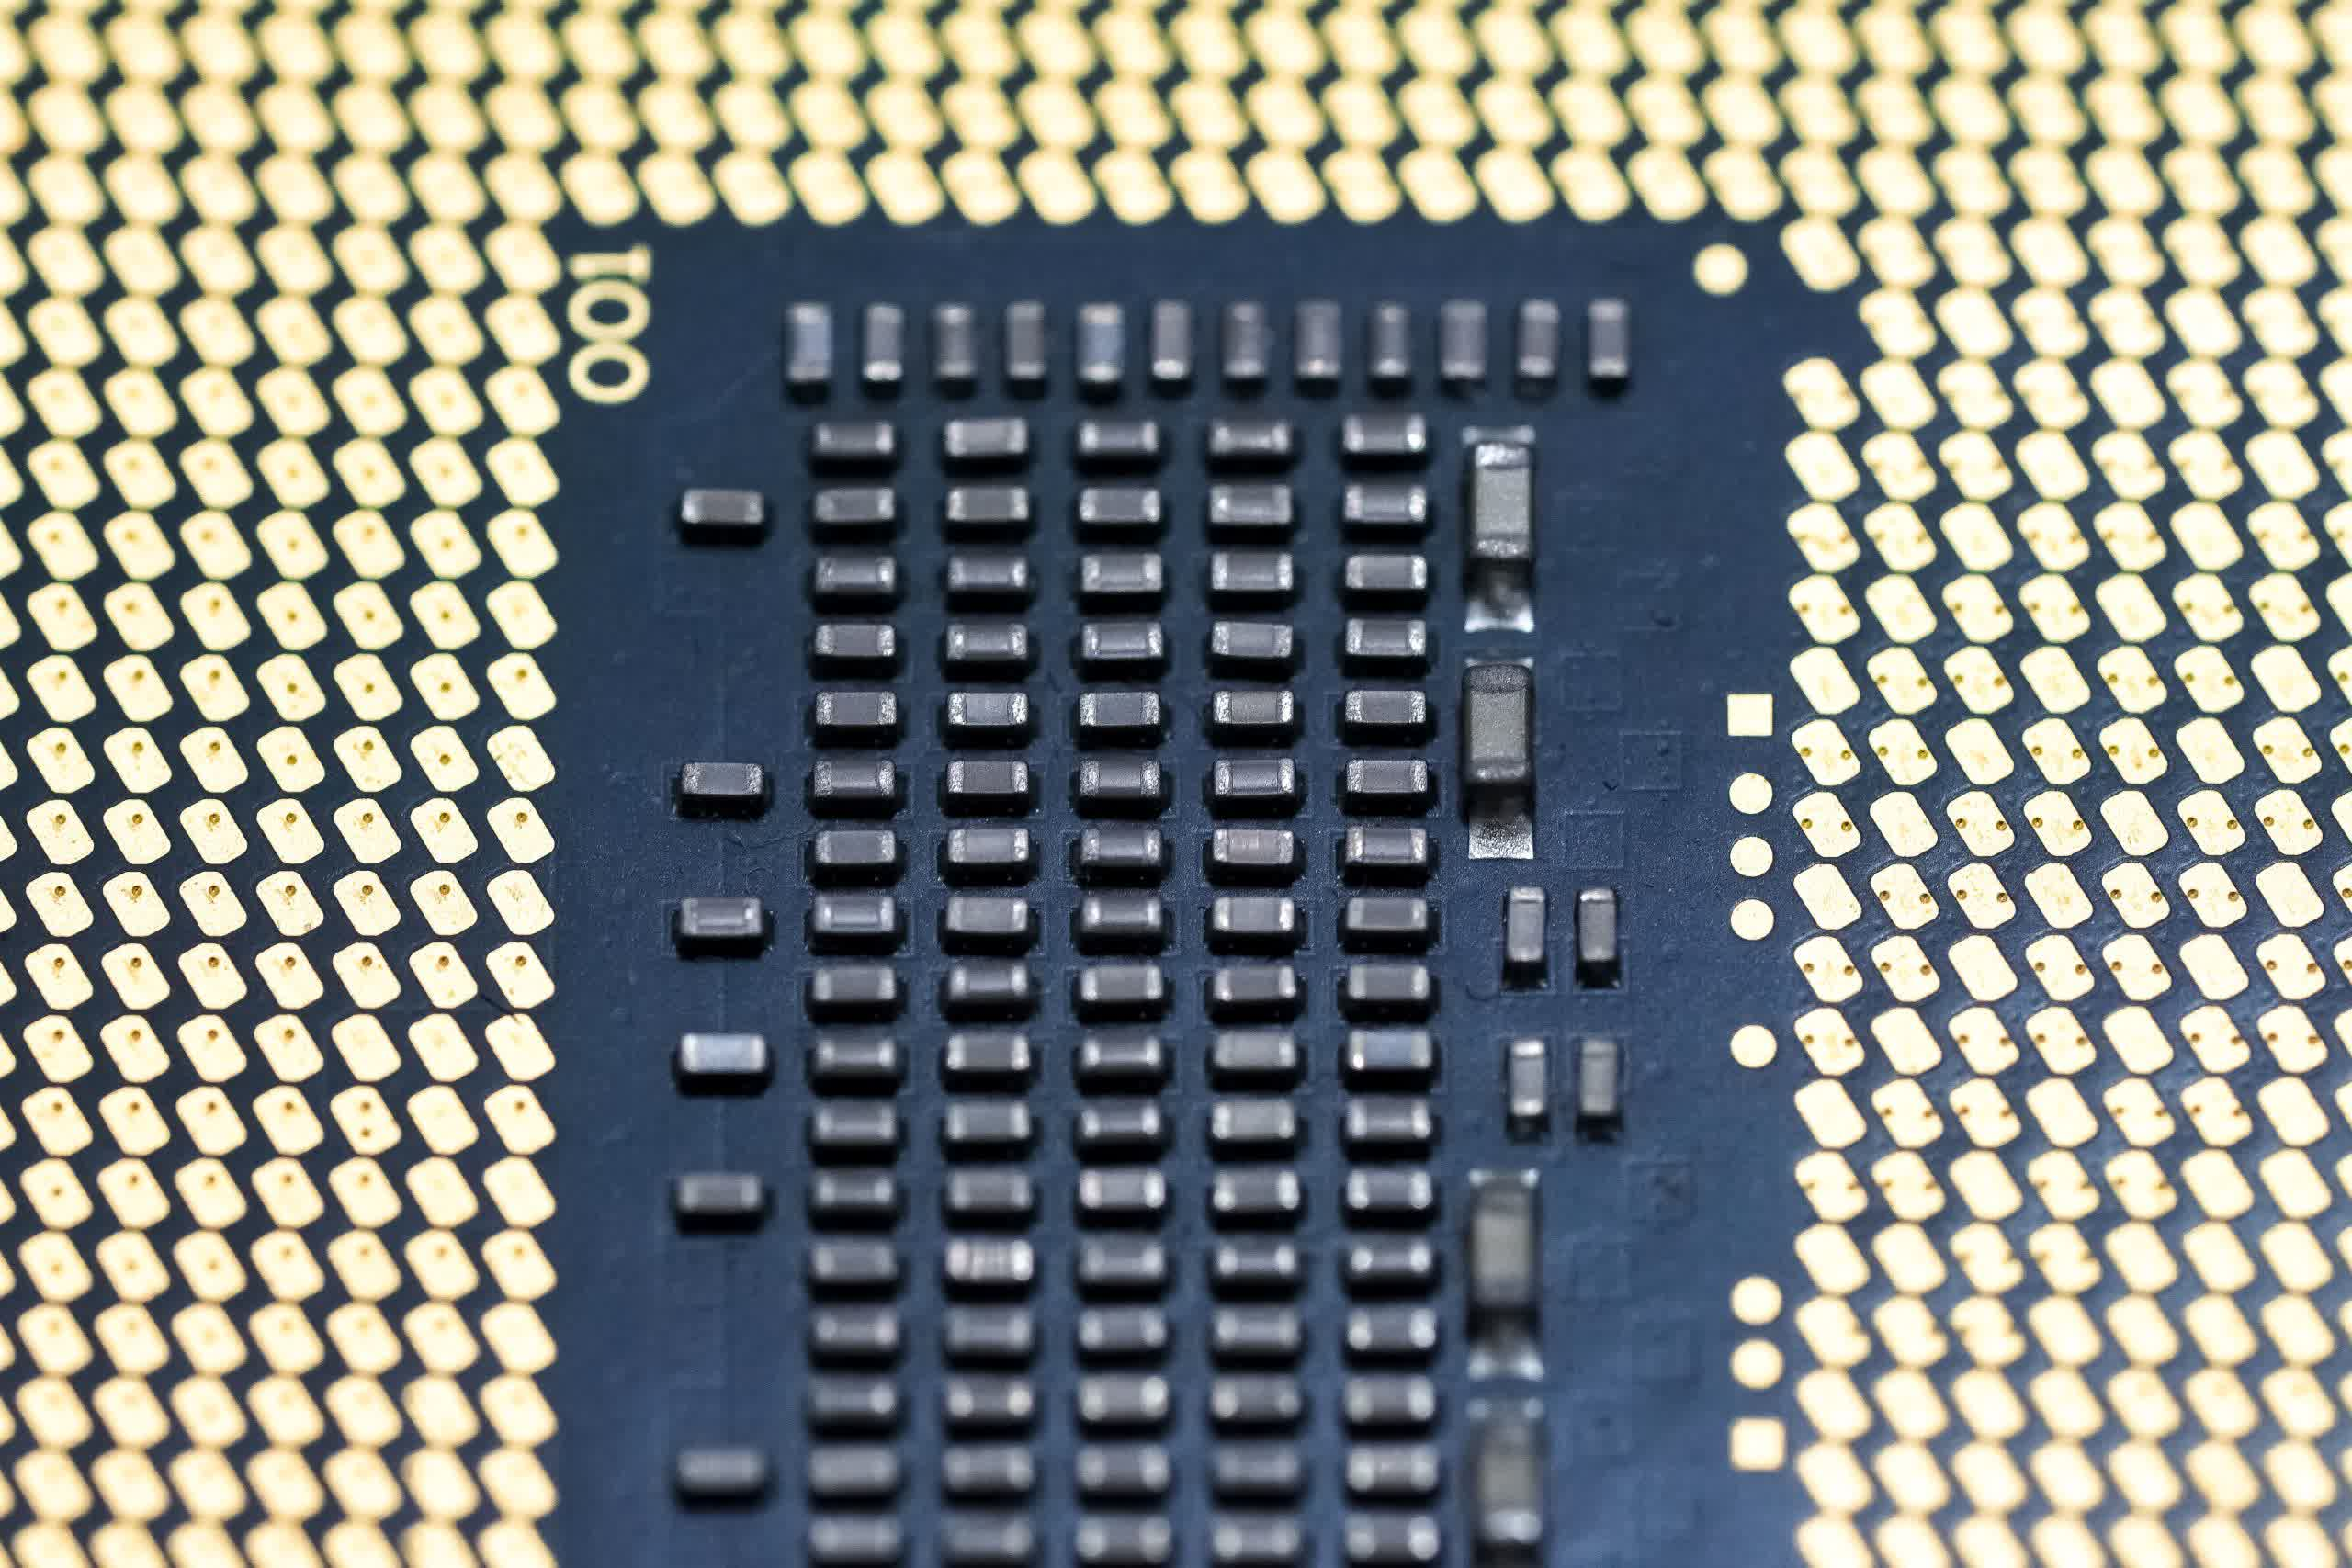 Intel updates Linux with support for Sapphire Rapids' in-package HBM2e memory